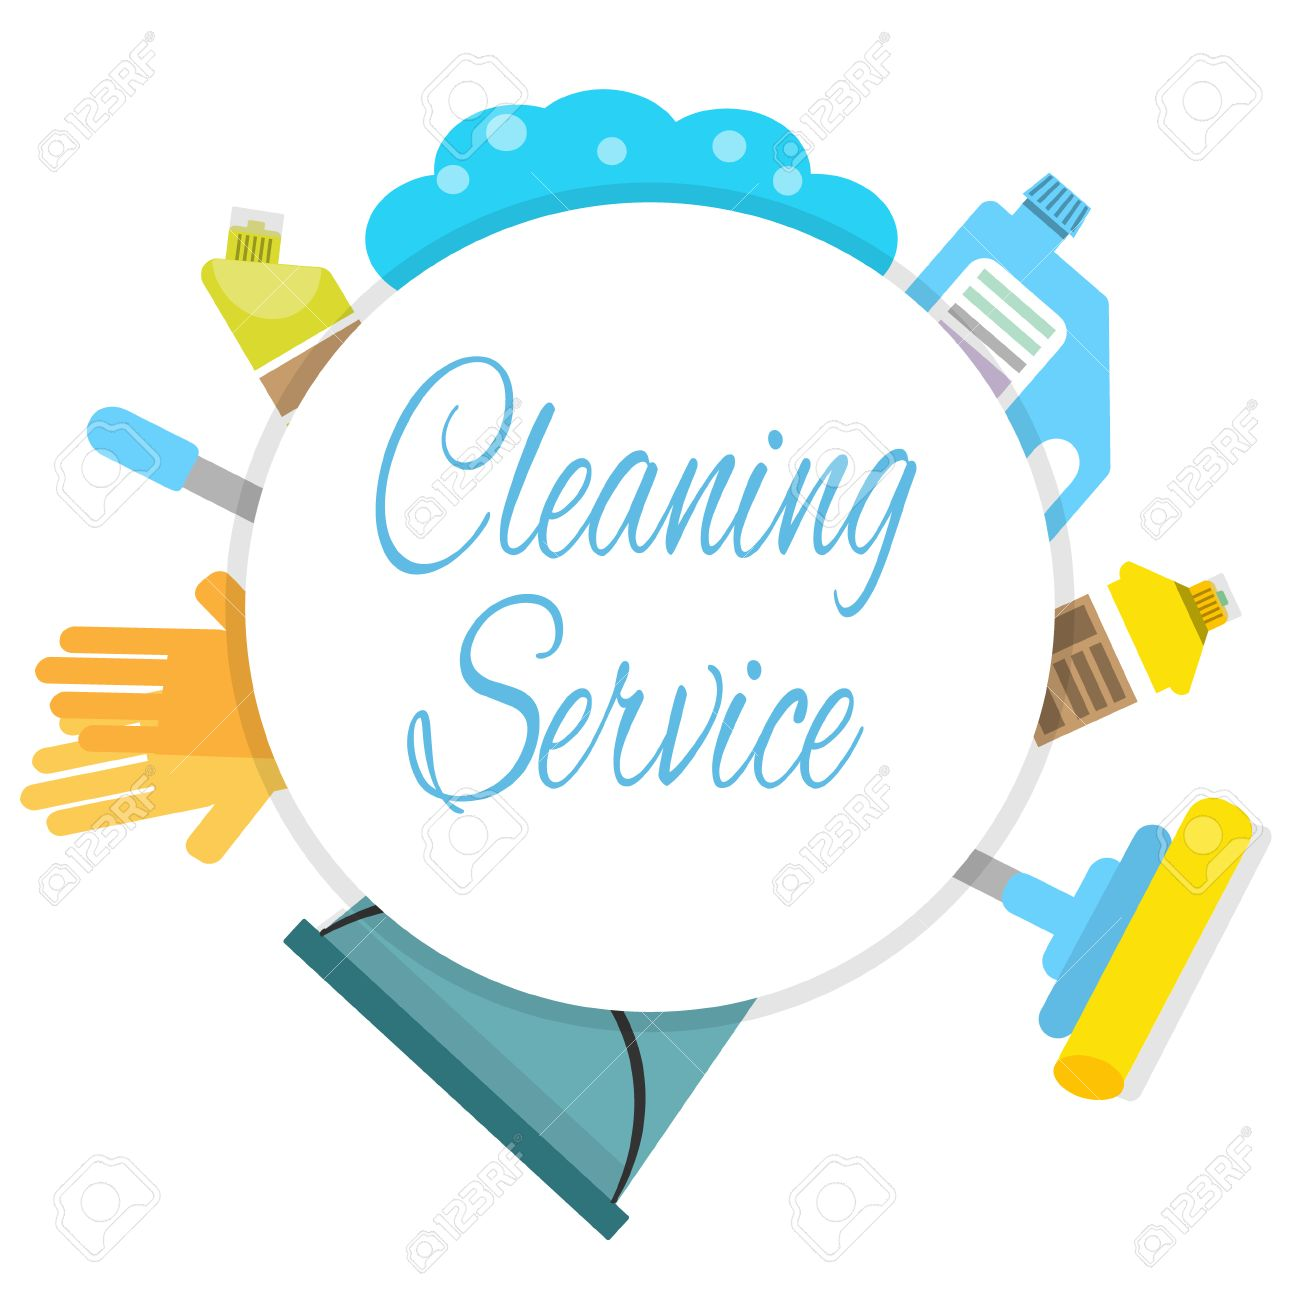 Cleaning Company Logo Concept Royalty Free Cliparts, Vectors, And Stock Illustration. Image 73324975.